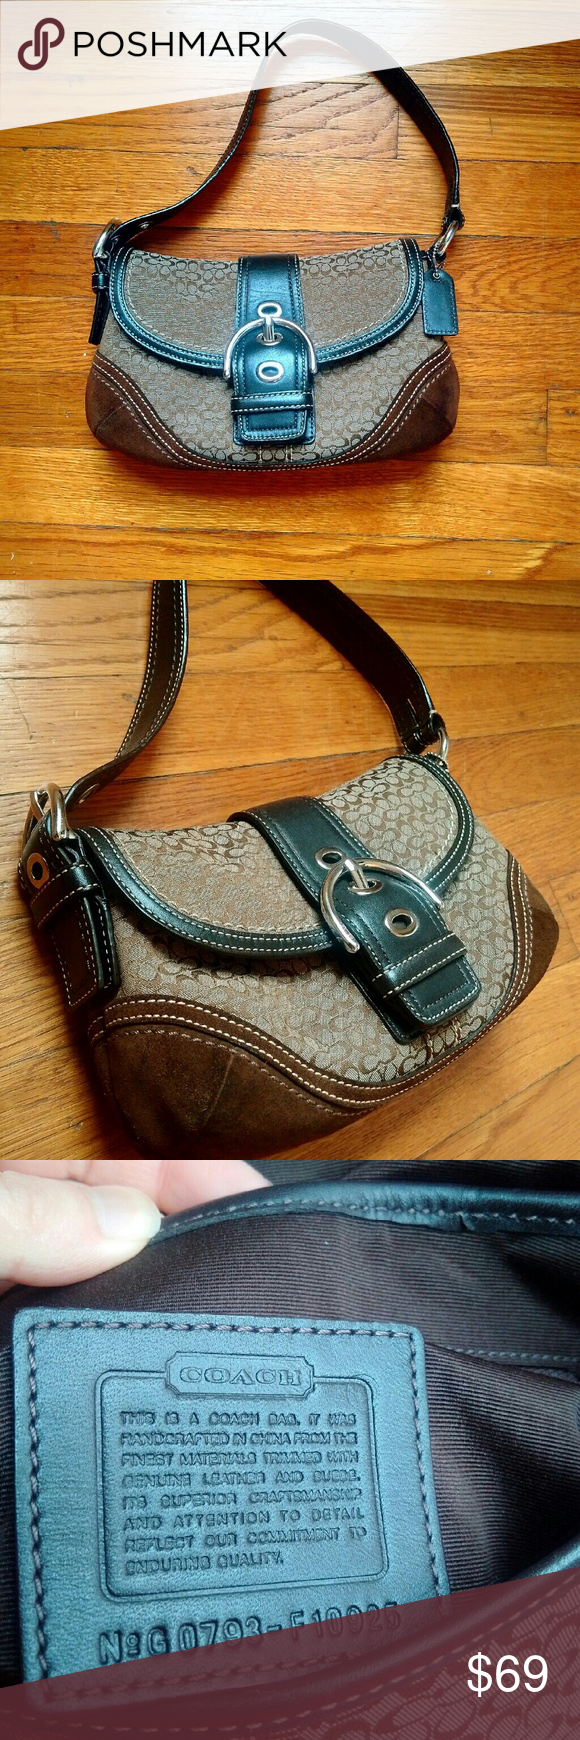 Coach Handbag Lightly used Immaculate condition Classic Coach print Quality beats today's Coach (imo!) Coach Bags Shoulder Bags